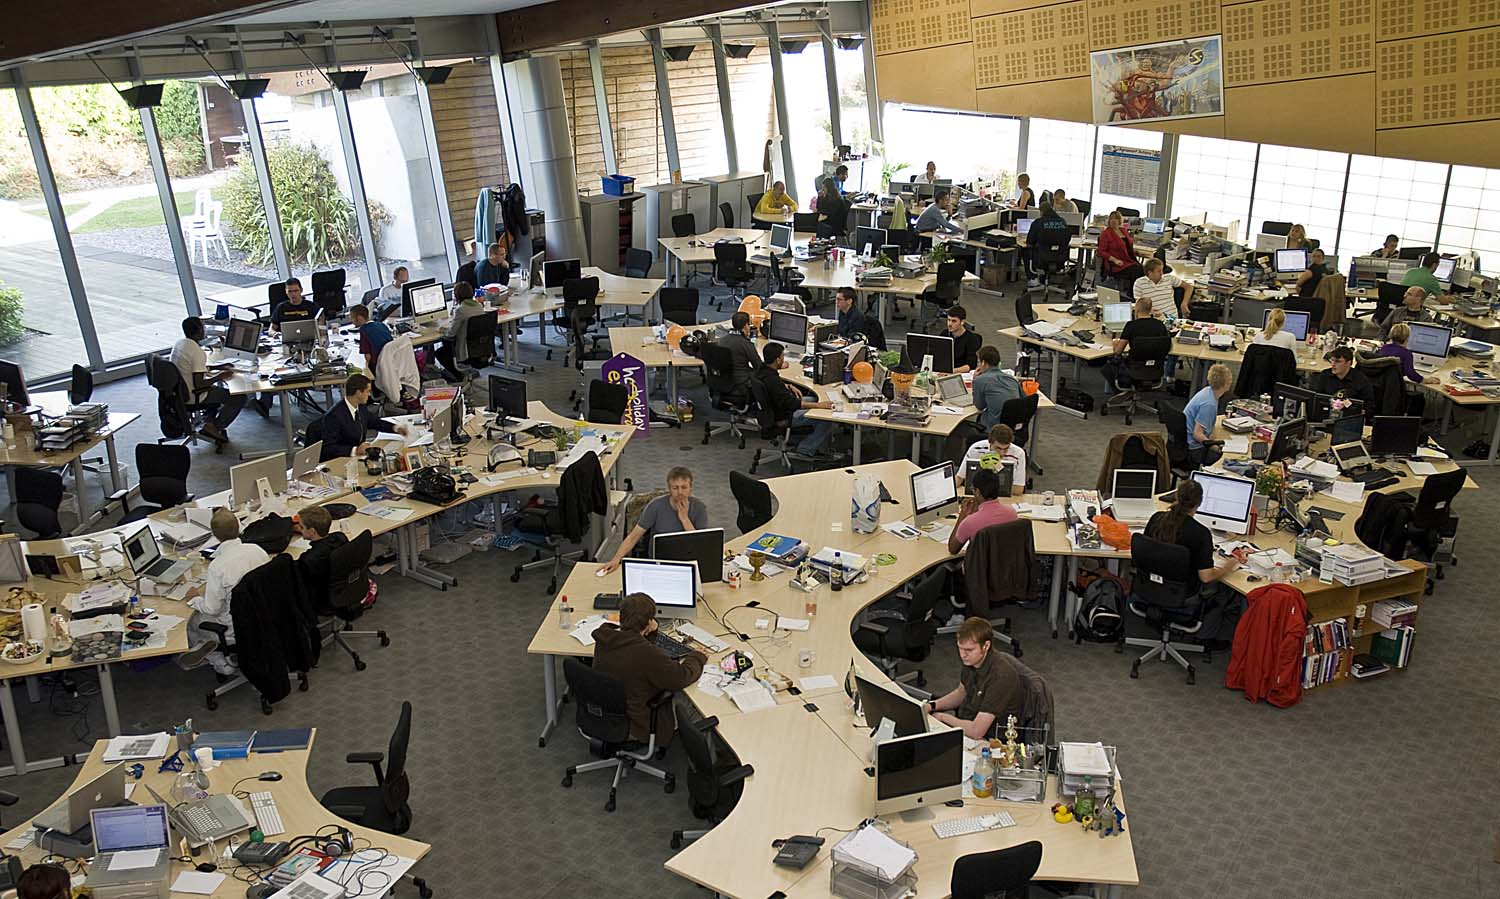 Indoor Plant Design Not A Smarter Workplace But A Smarter Worker The Exeter